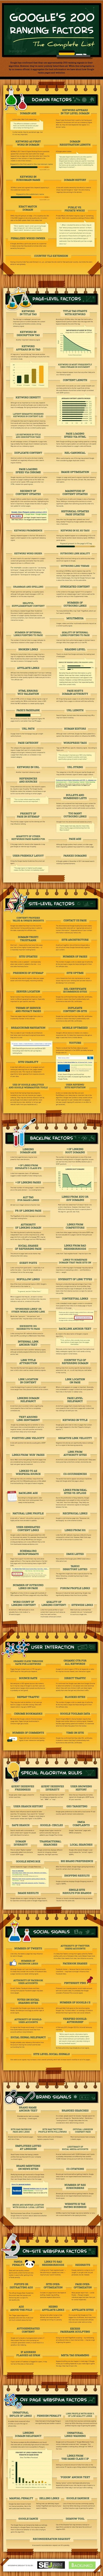 [Infographic] Google's 200 Ranking Factors: the Complete List | Online tips & social media nieuws | Scoop.it